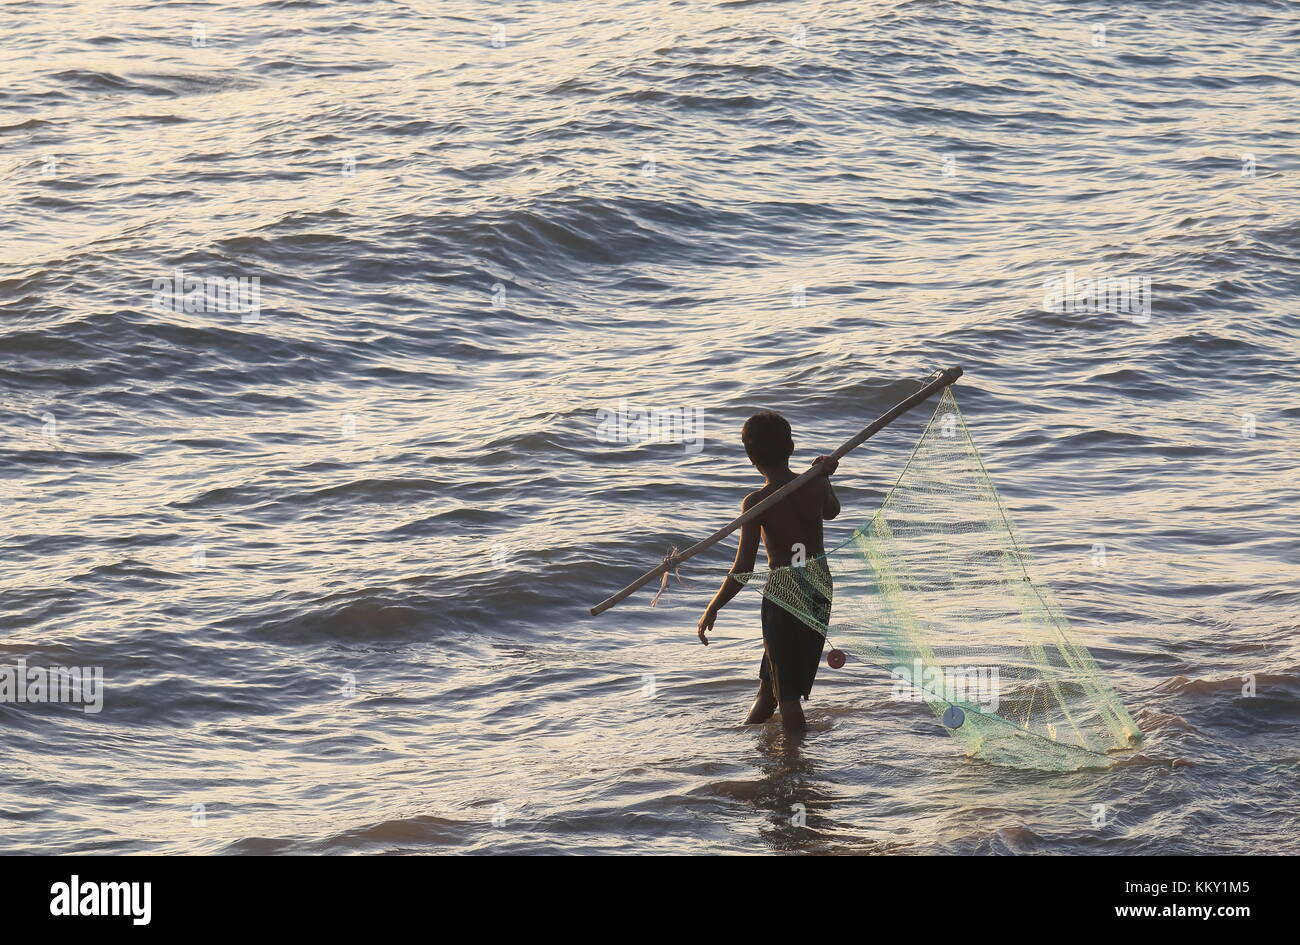 Indian child fisherman in Mumbai India - Stock Image